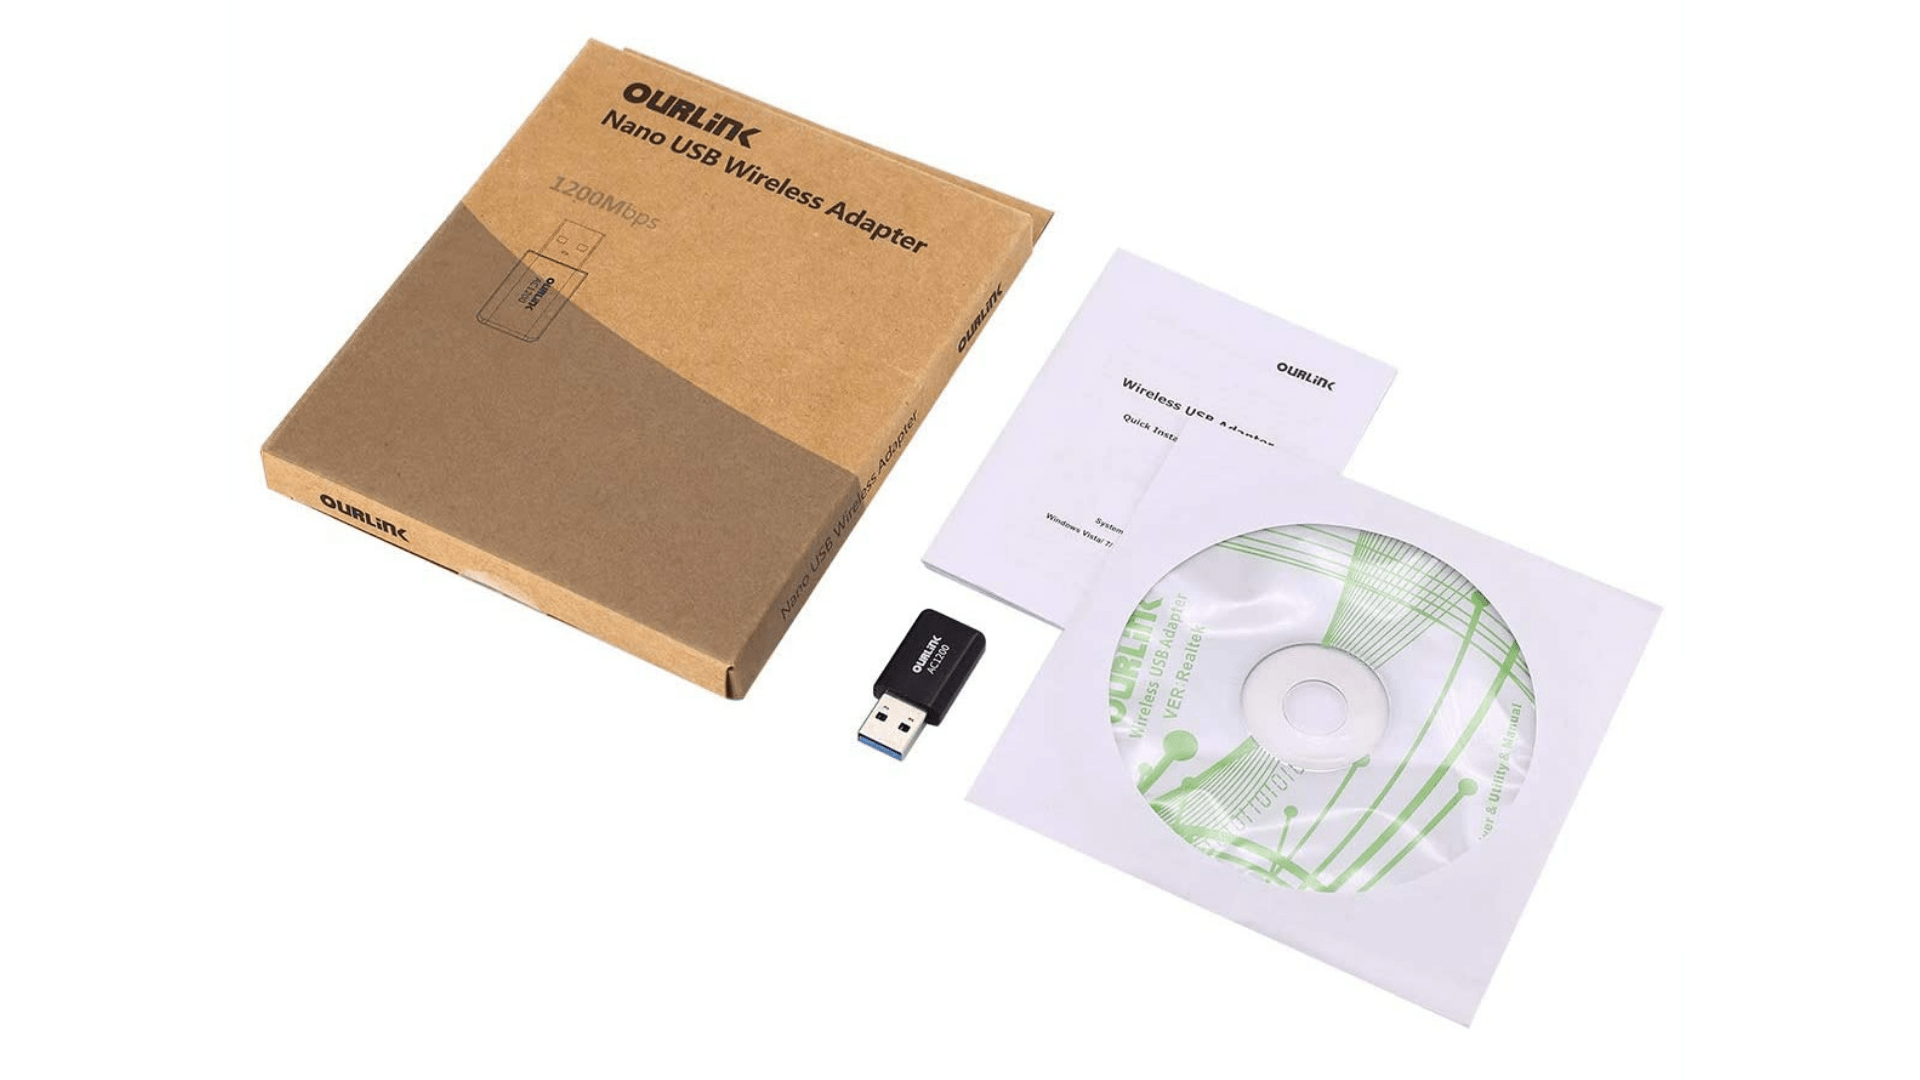 OurLink's Glam Hobby USB WiFi Adapter with a CD installation guide and USB manual.